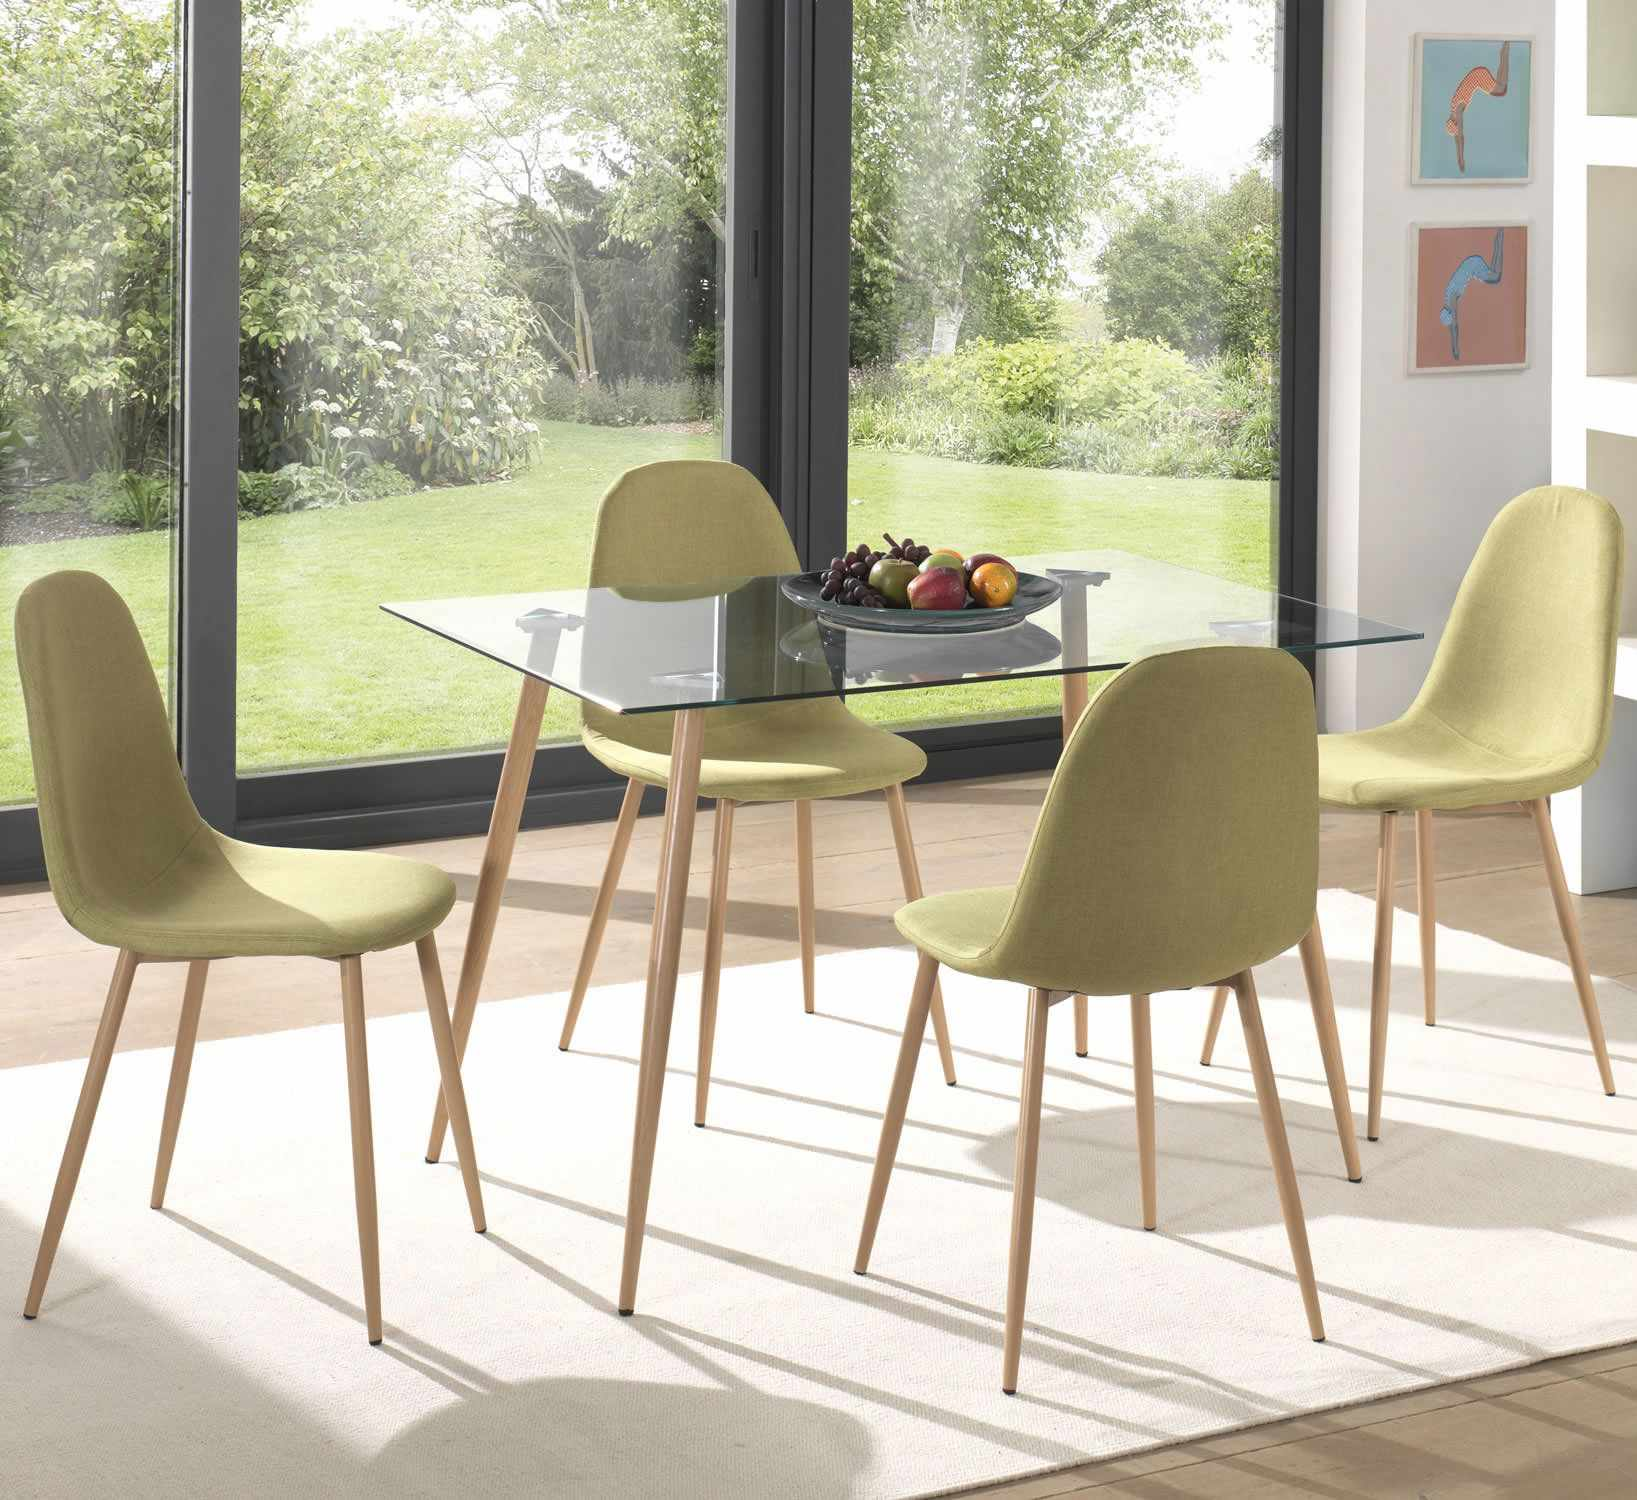 High Quality Glass Top Dining Table And Chairs Set Modern 9 Seats ...